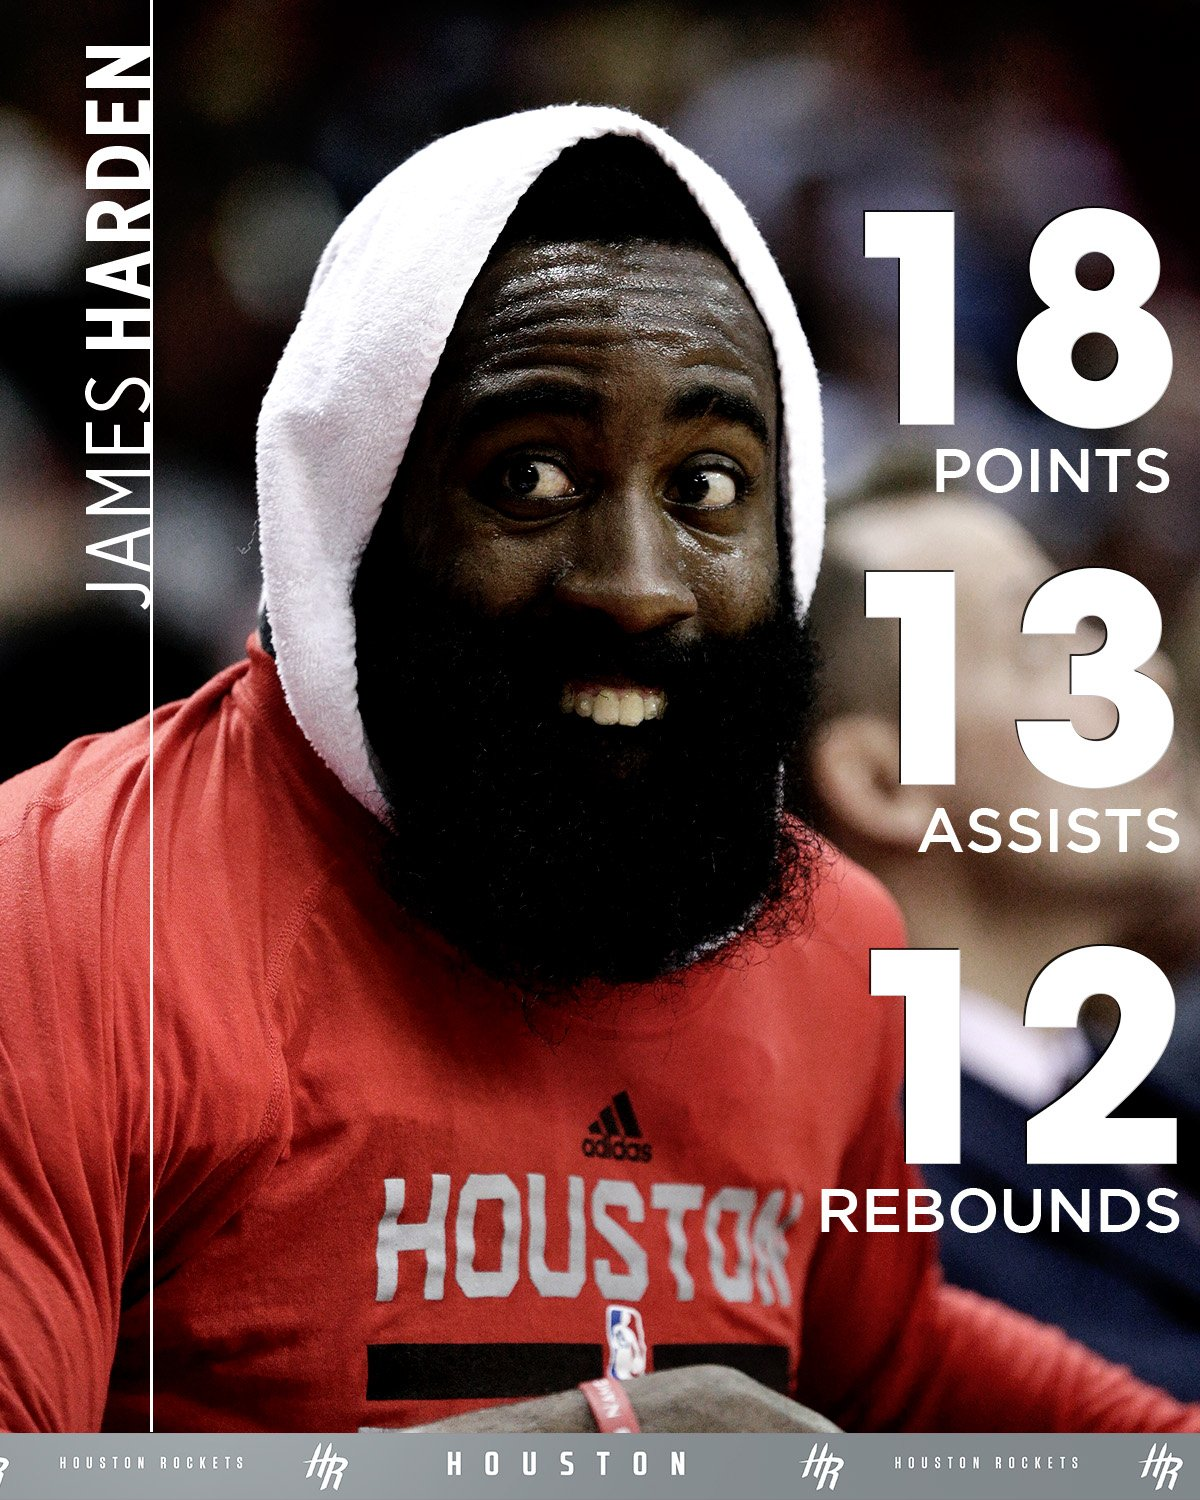 James Harden: the gift that keeps on giving �� https://t.co/hMbRGNXAIr